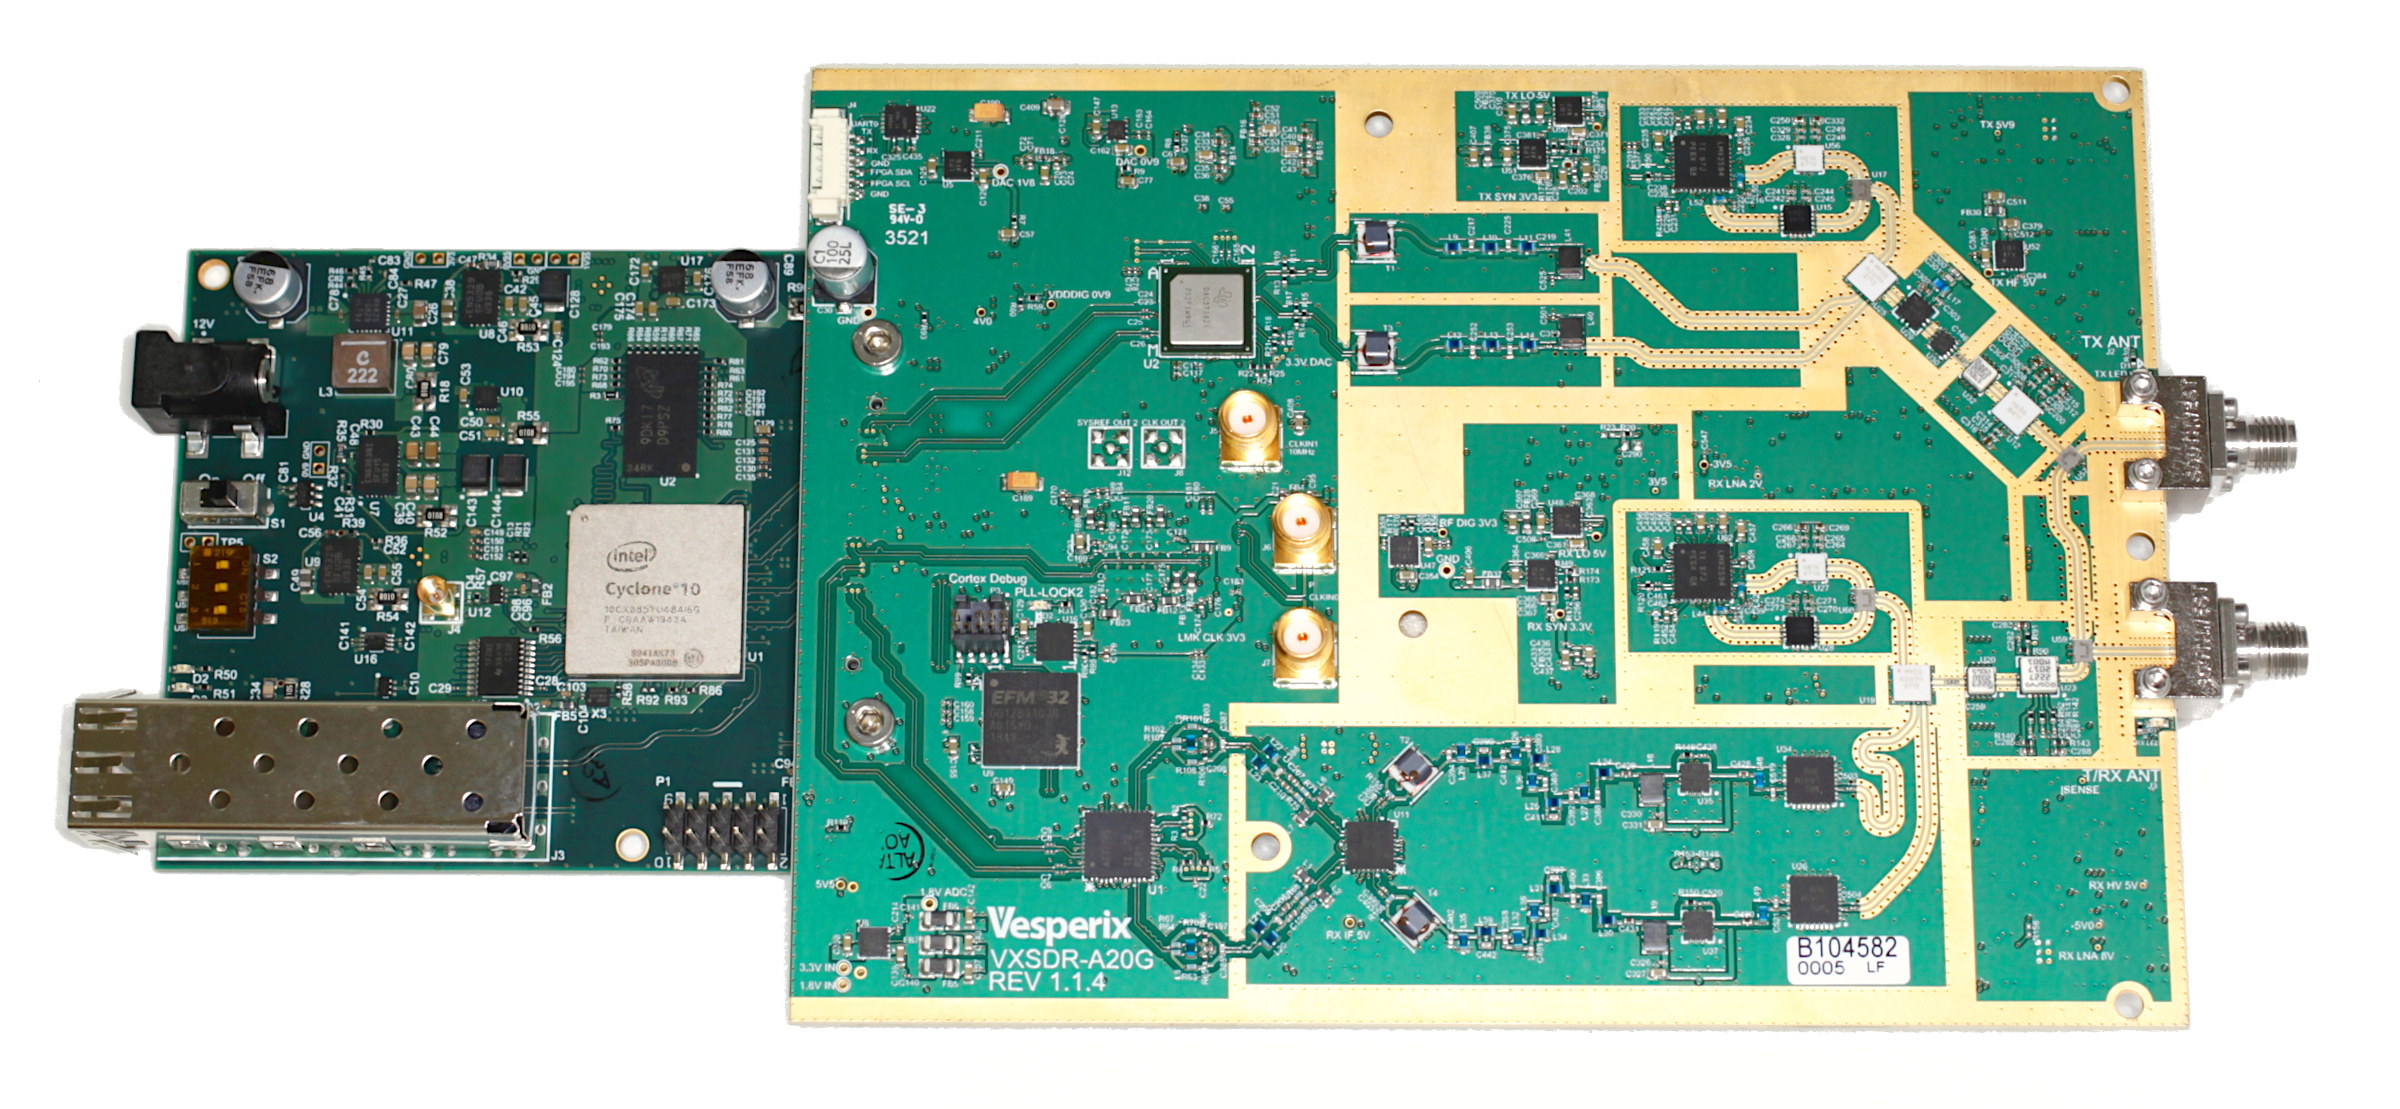 Picture of the VXSDR-20 boards